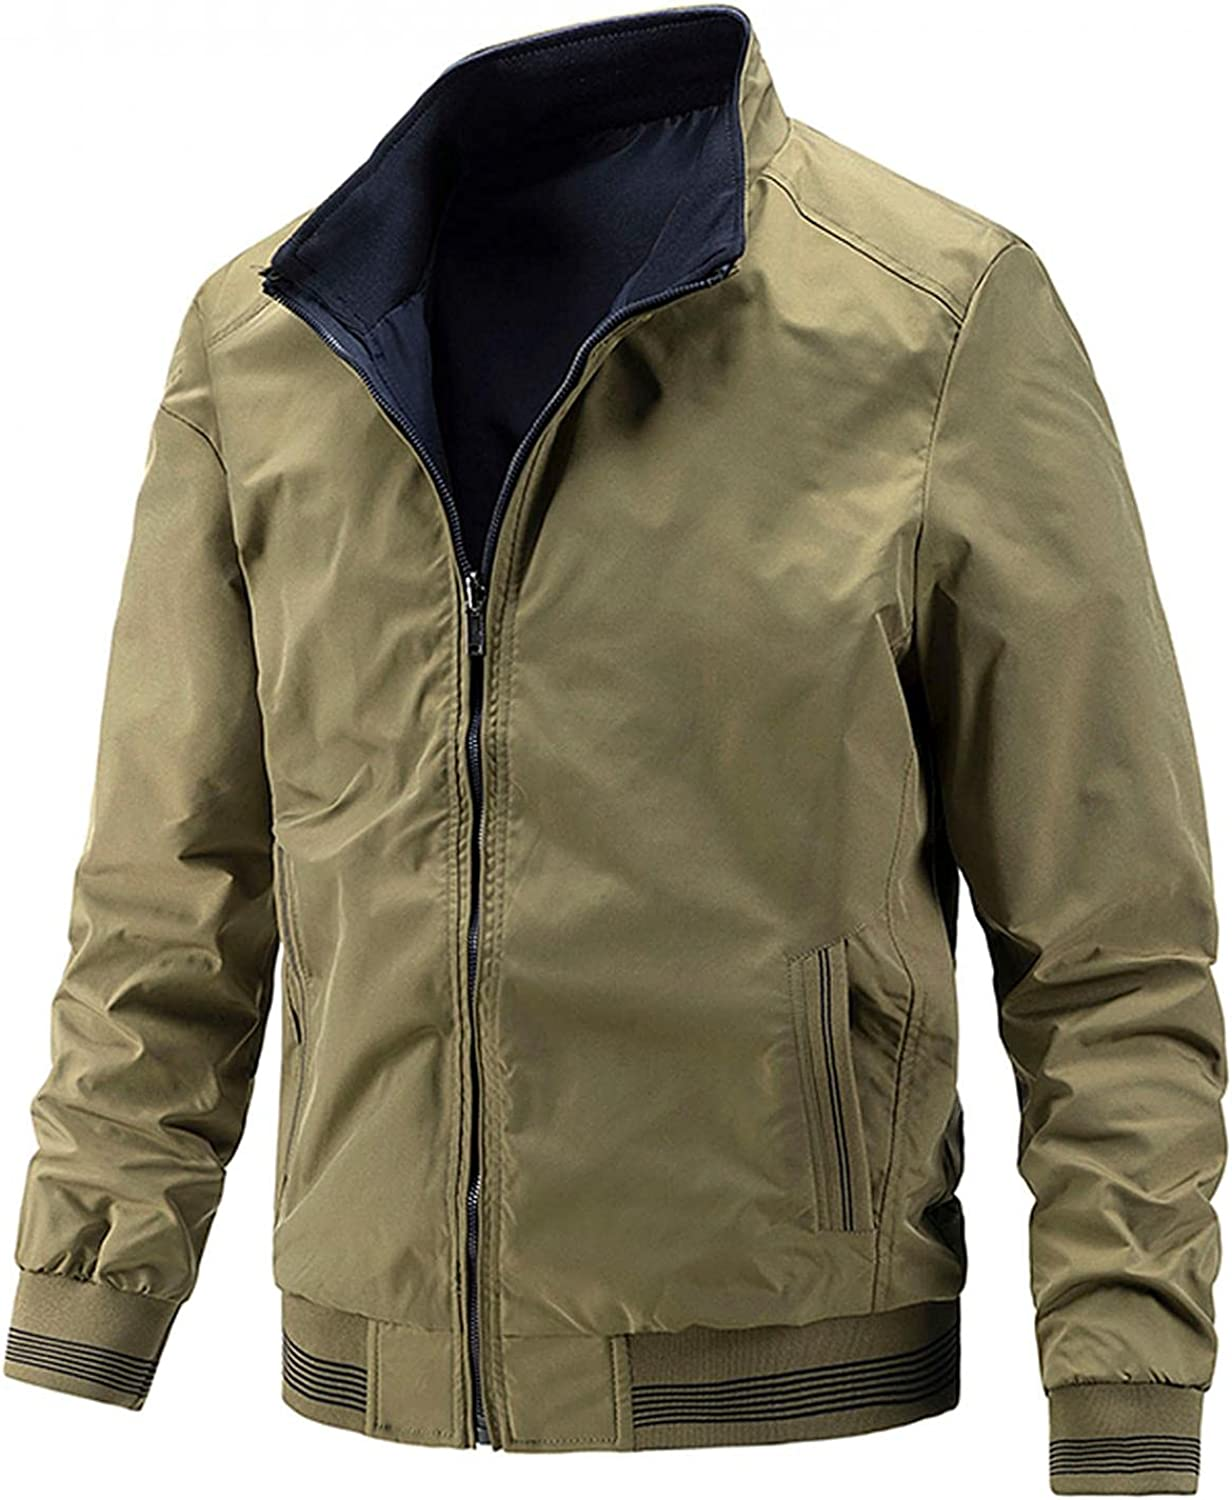 LEIYAN Mens Cargo Military Jackets Zip Up Long Sleeve Casual Lightweight Outdoors Hiking Bomber Jackets with Pockets